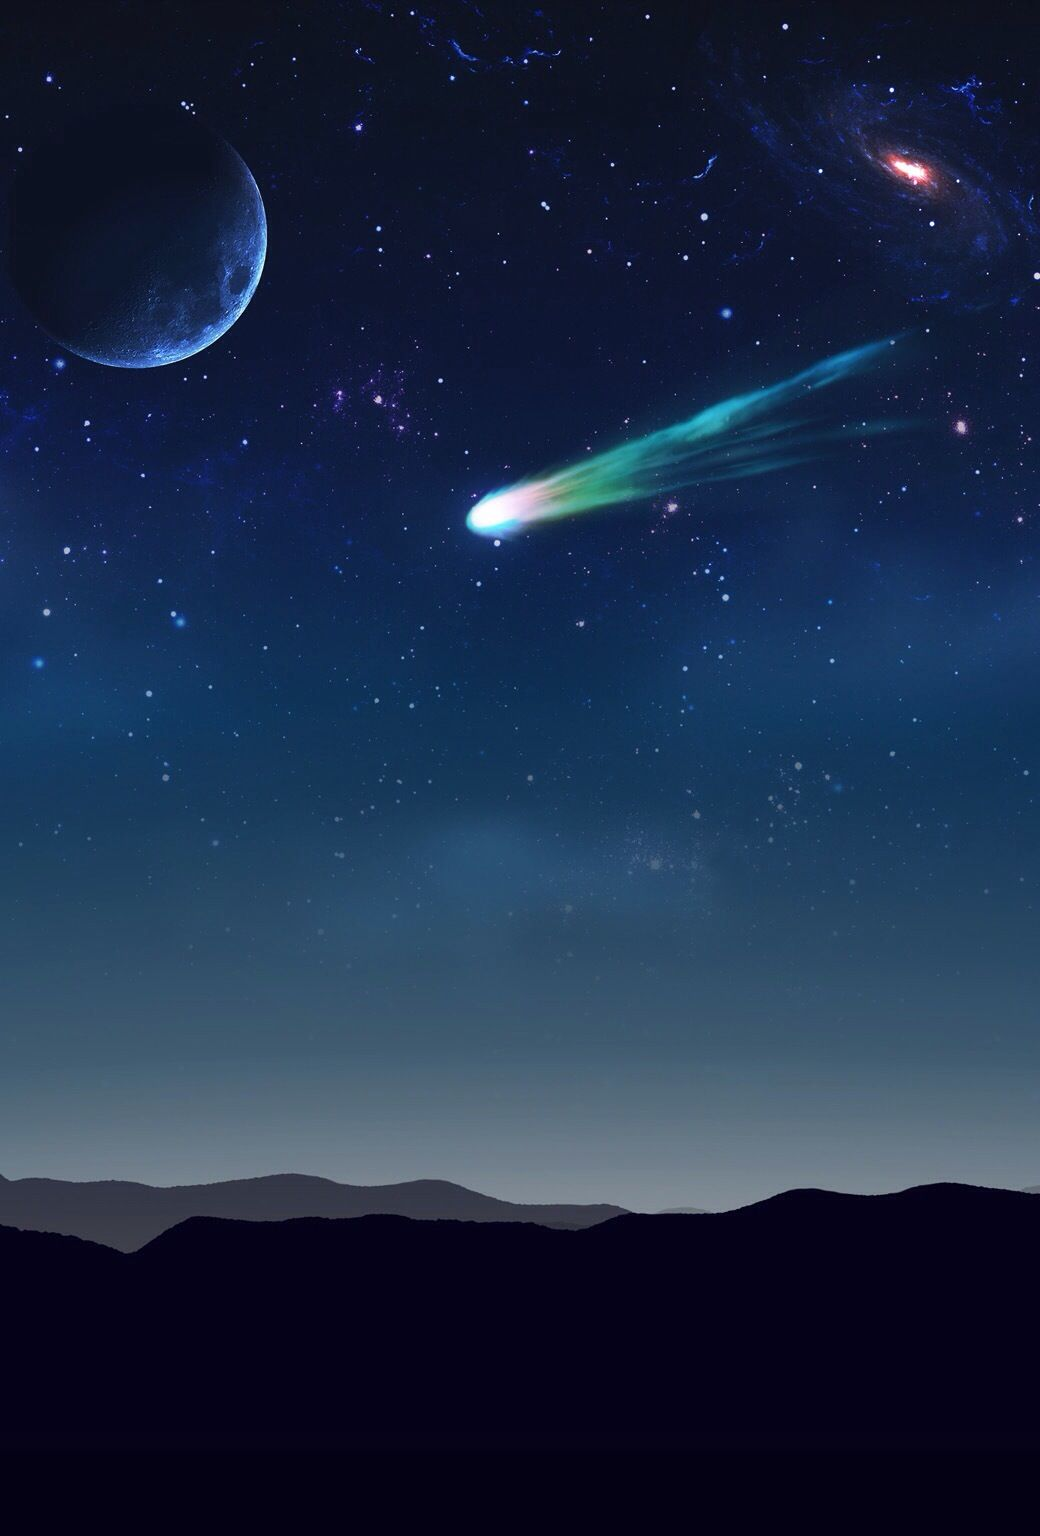 Shooting Star Cool Backgrounds Wallpaper Space Shoot The Moon